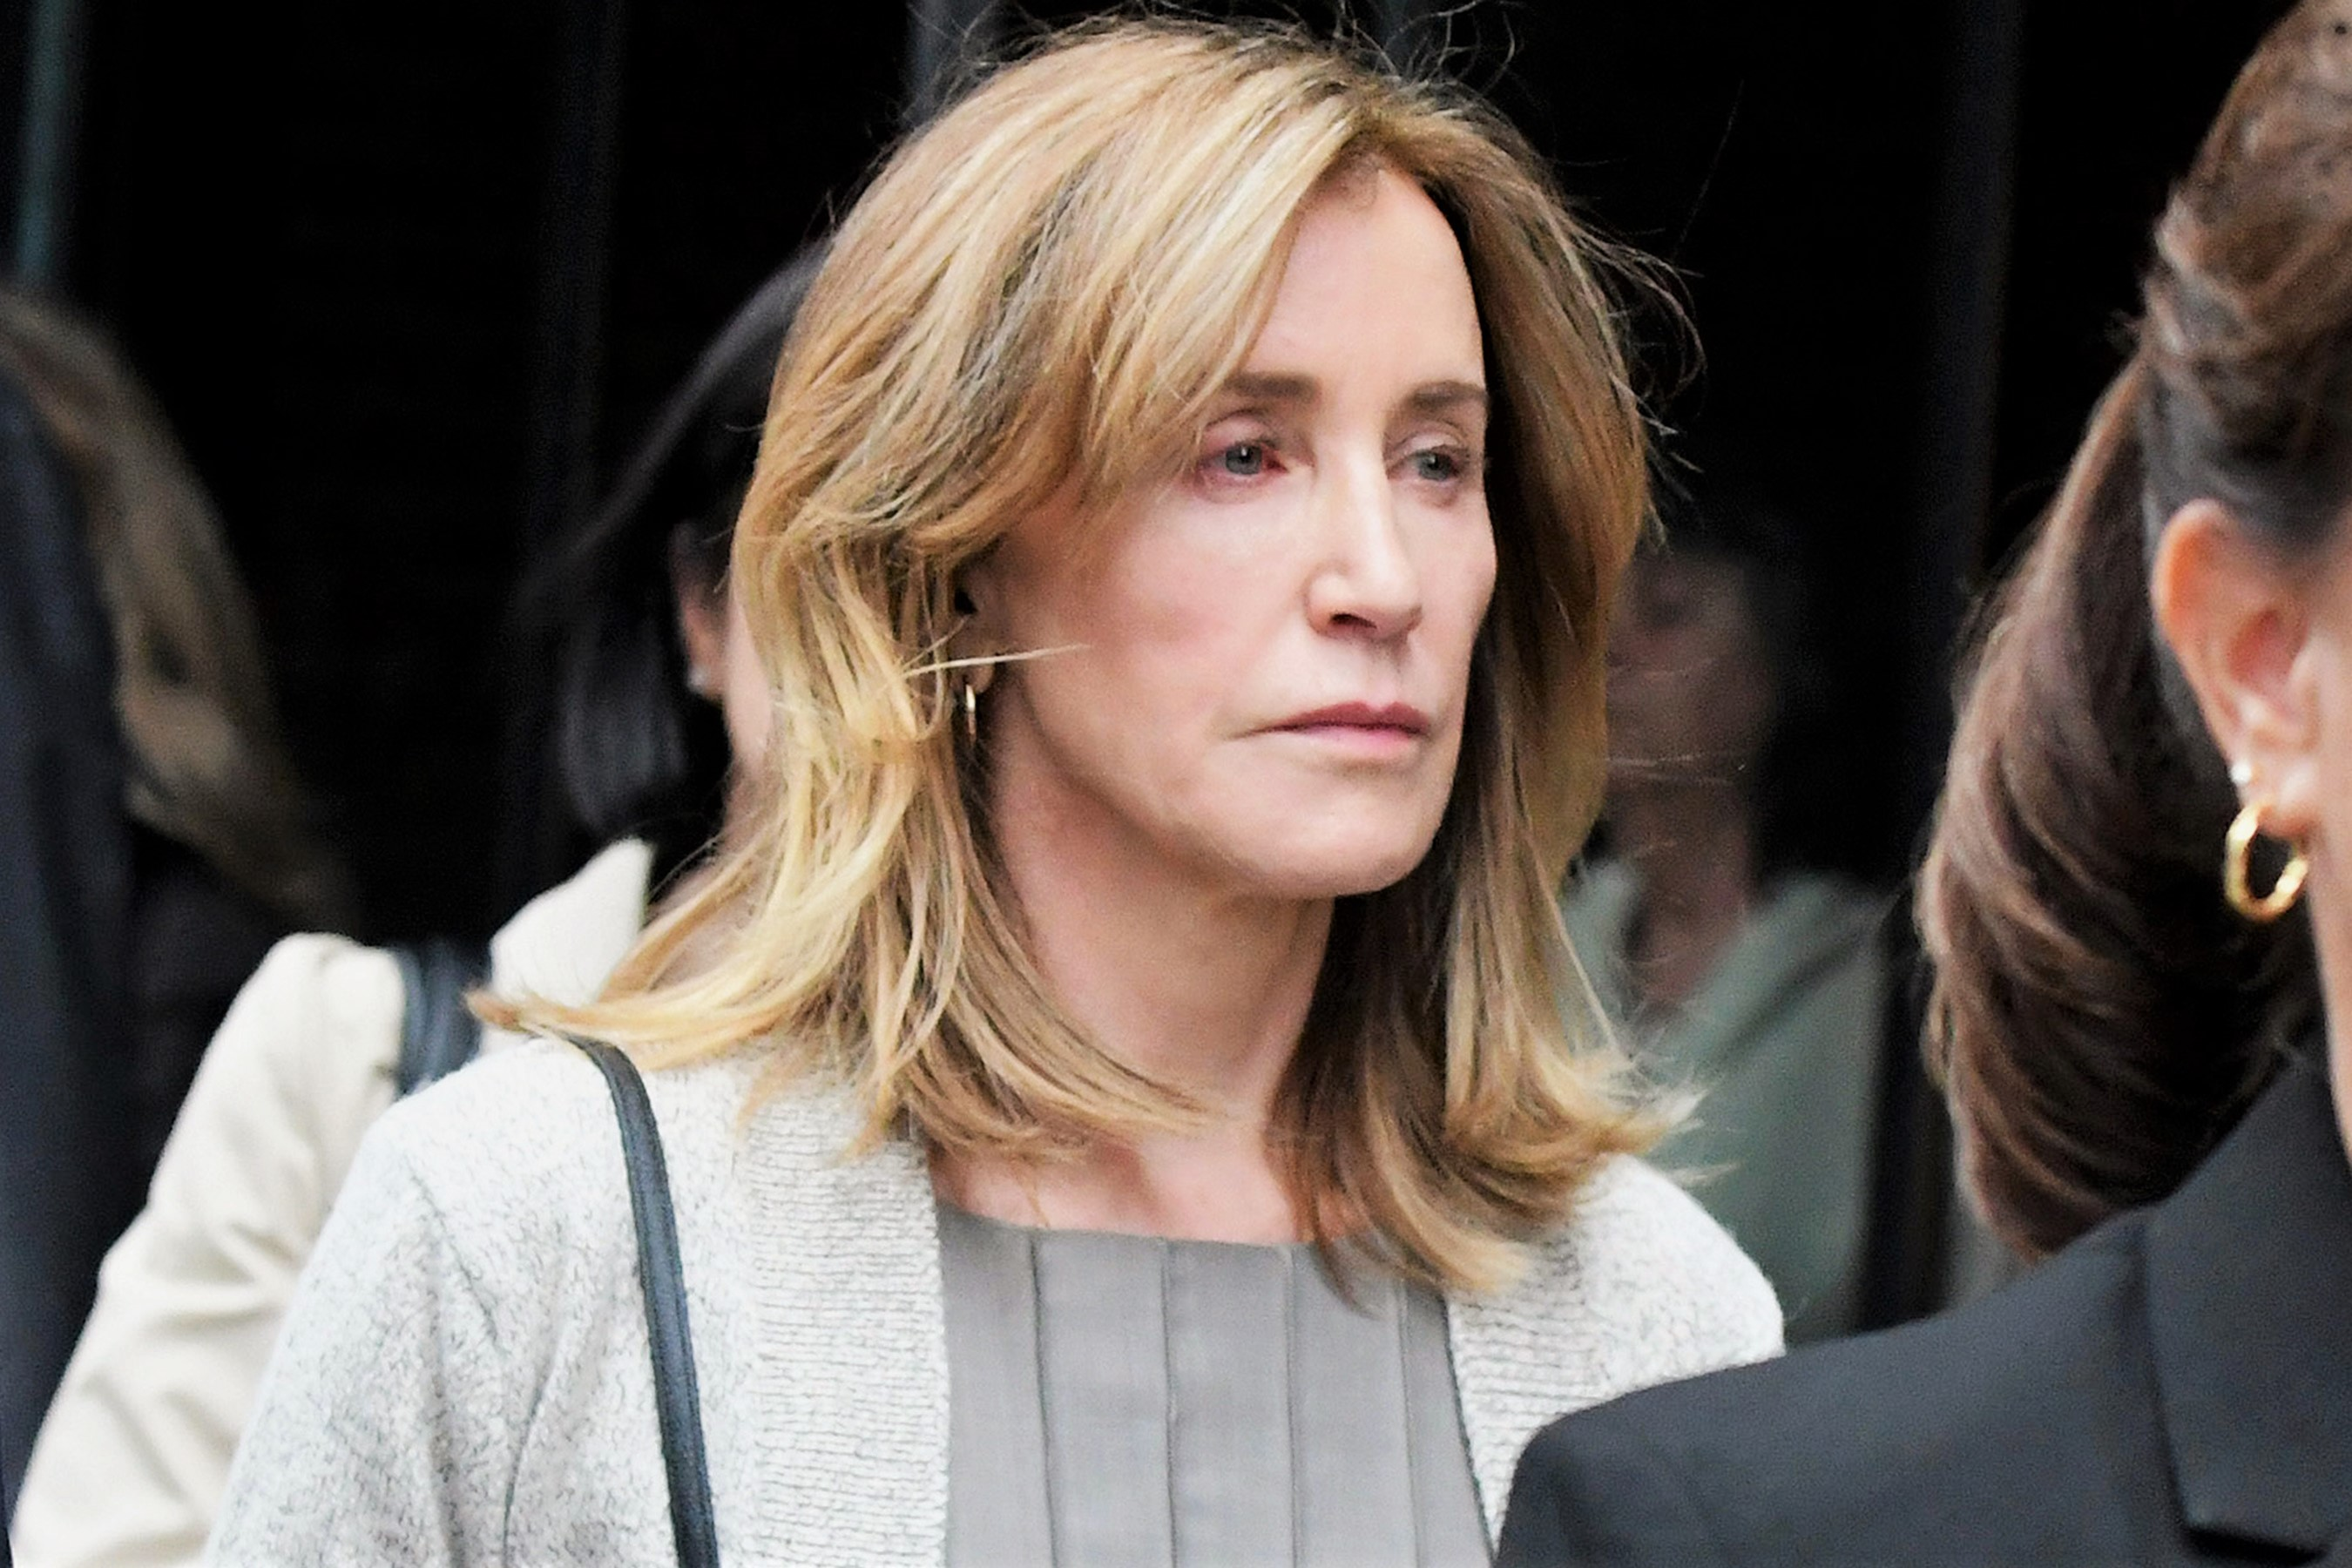 Felicity Huffman at Federal Court in Boston